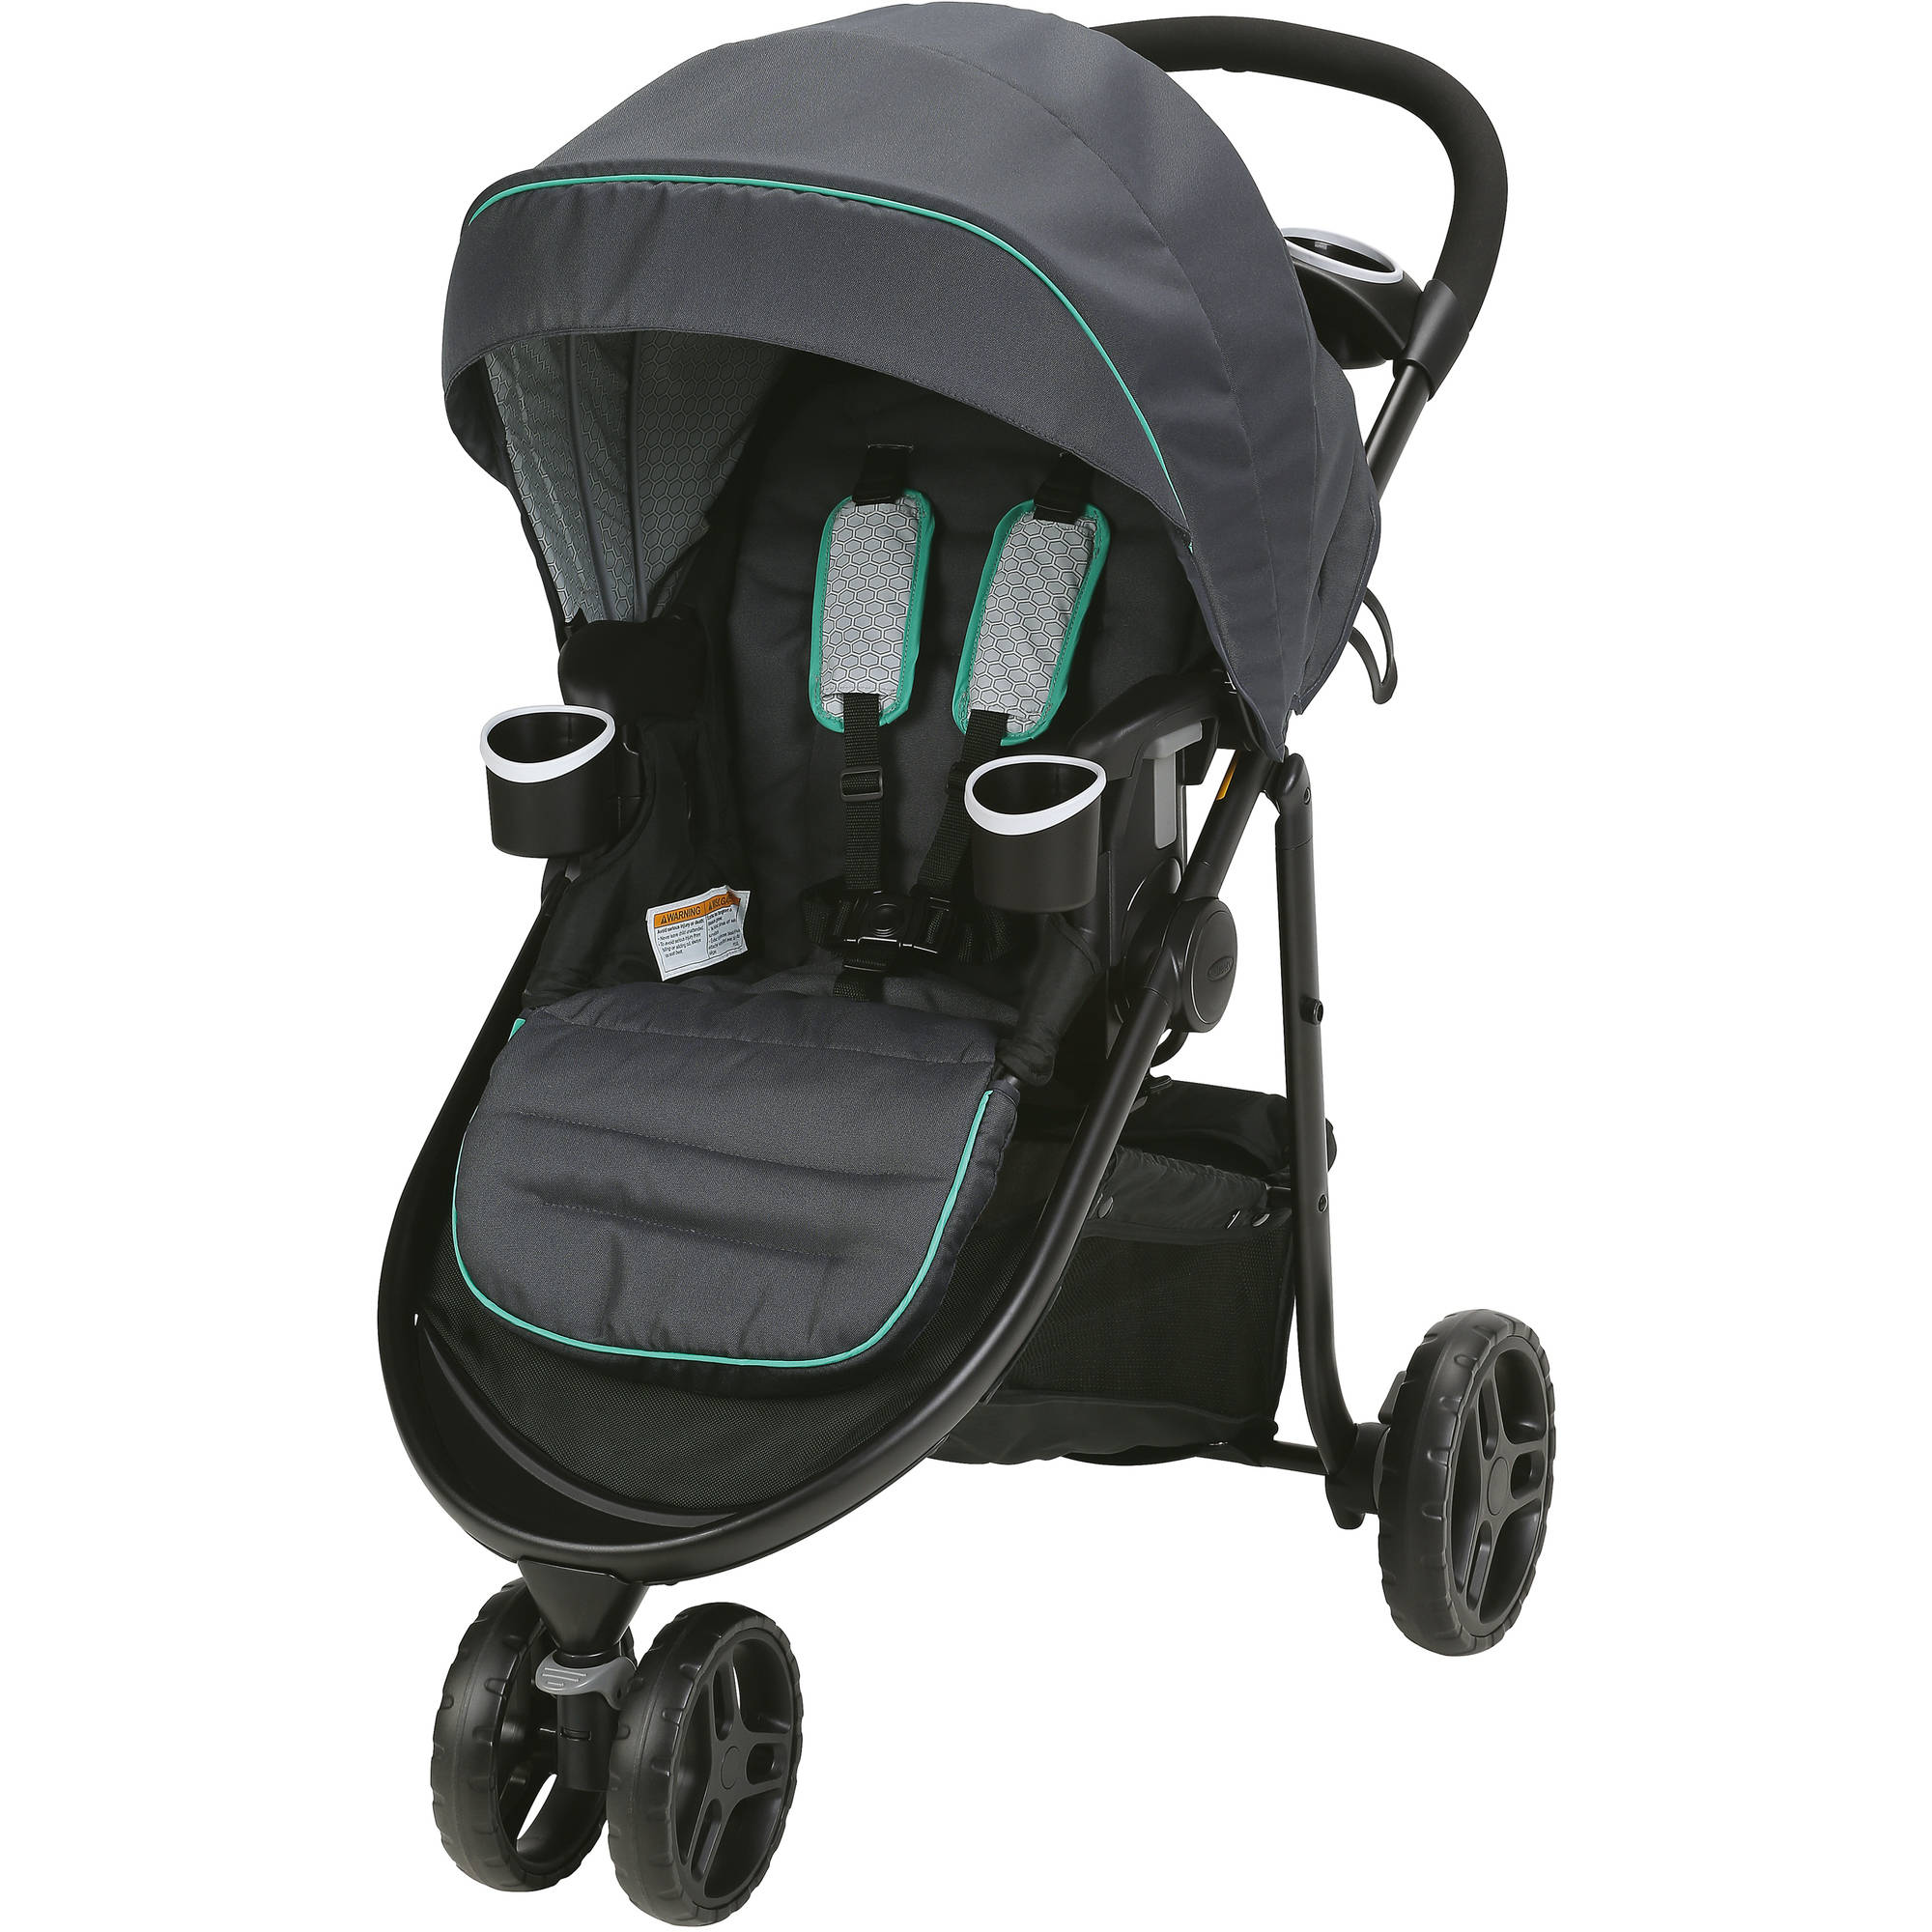 Graco Modes 3 Lite Lightweight Stroller, Basin by Graco